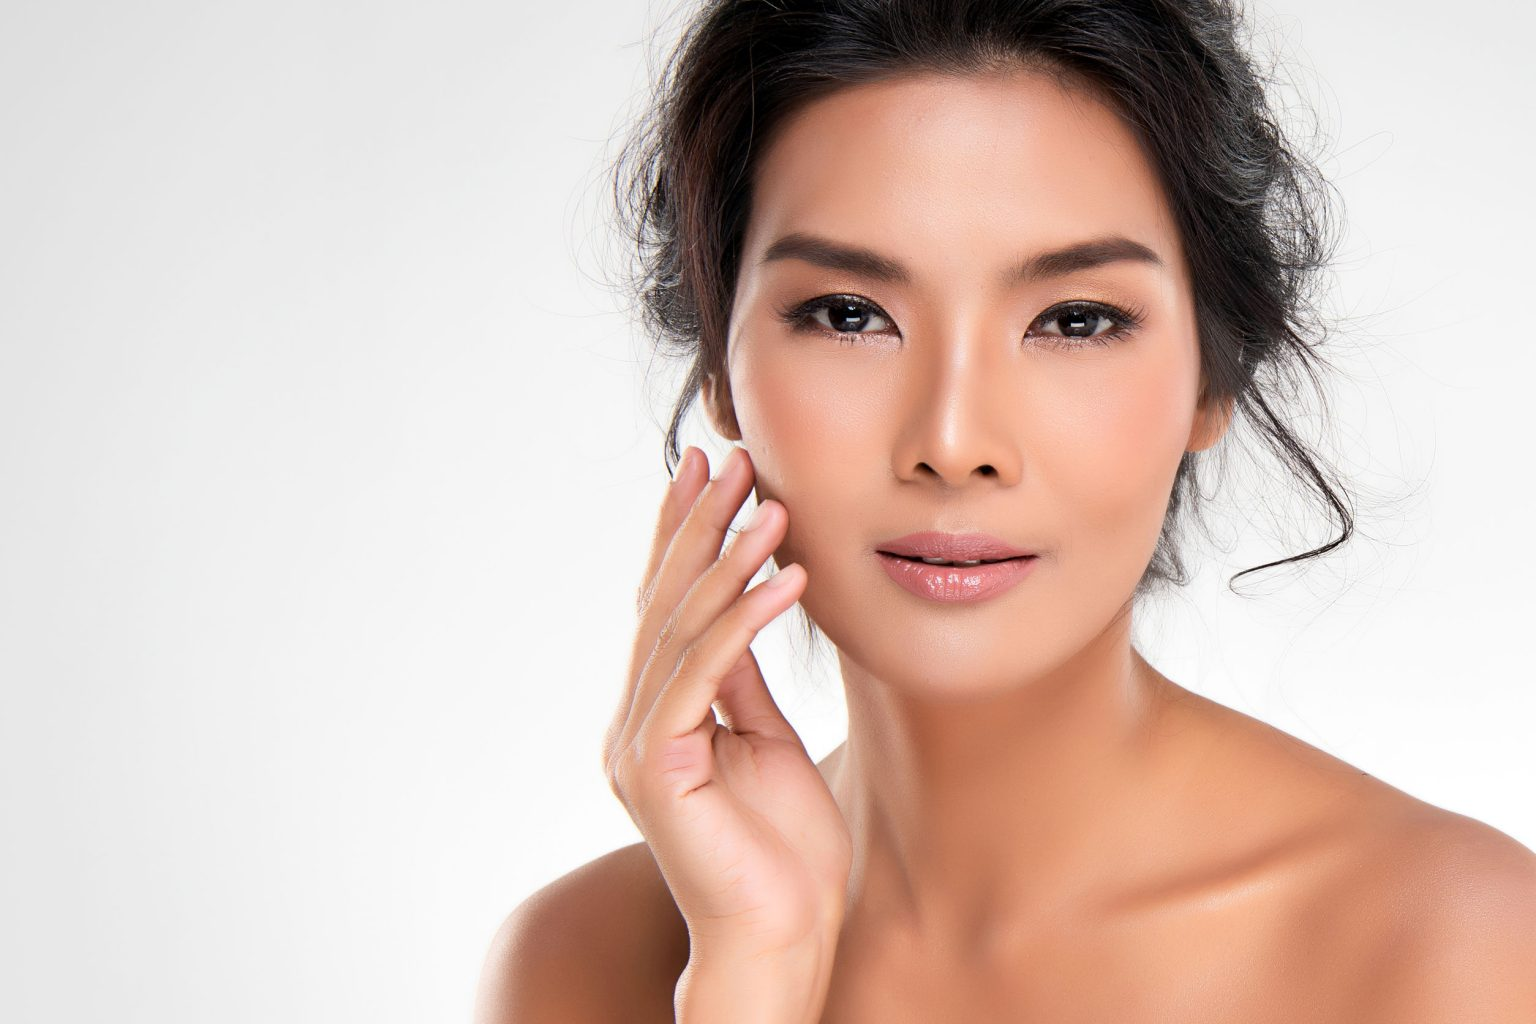 Our esthetician is familiar with various skin types, and tones.